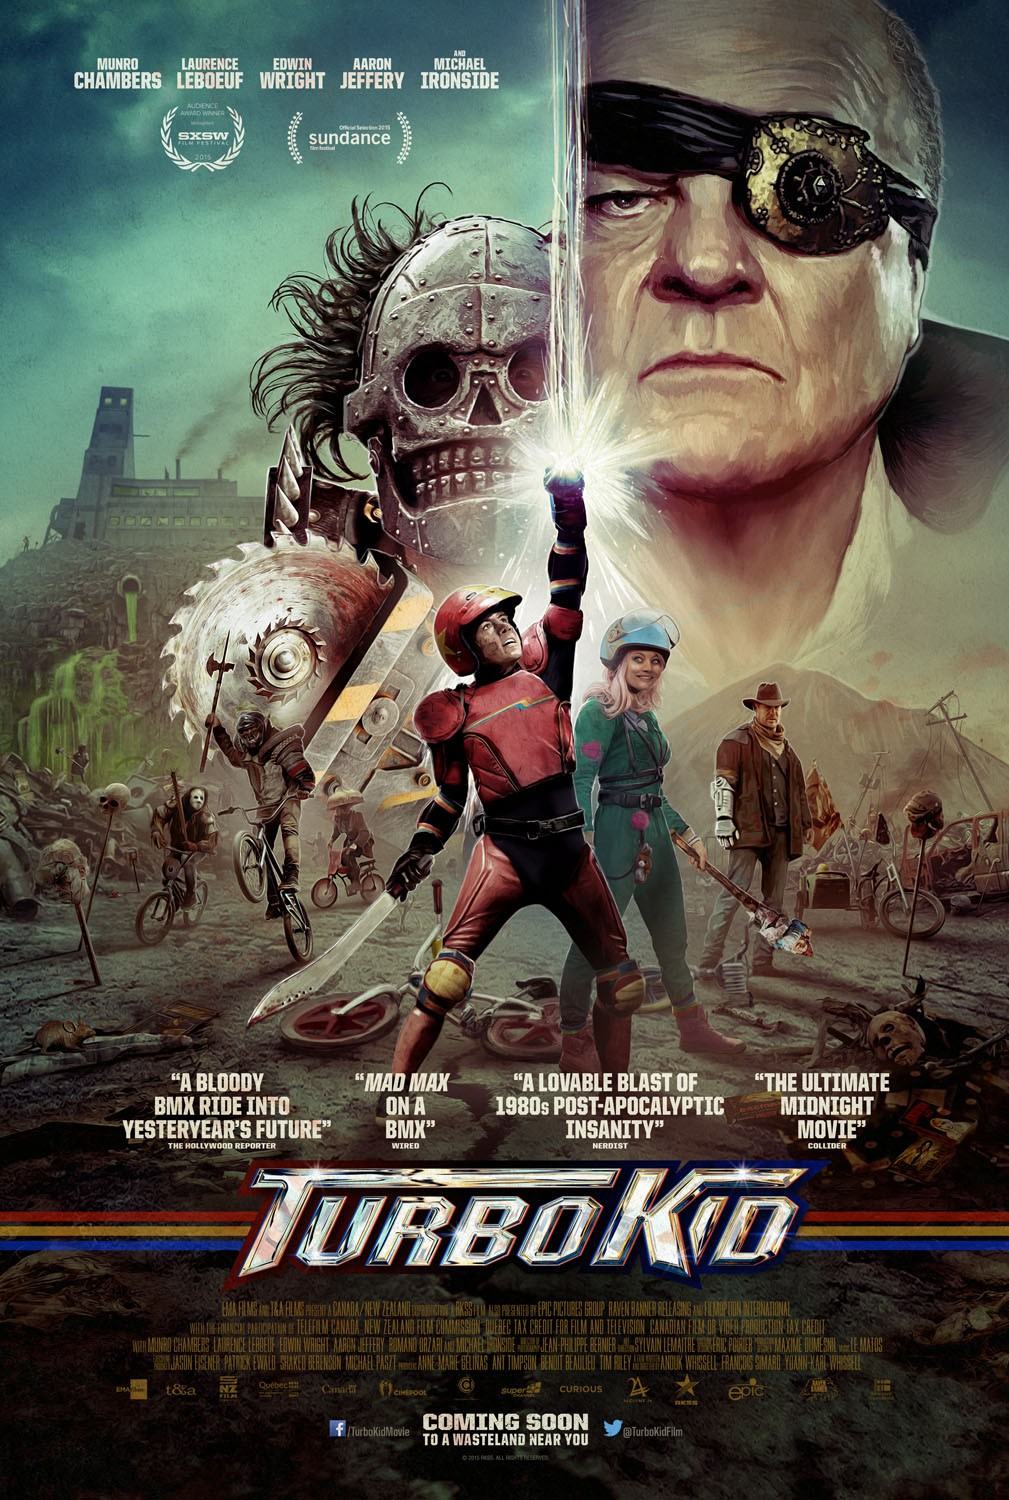 Extra Large Movie Poster Image for Turbo Kid